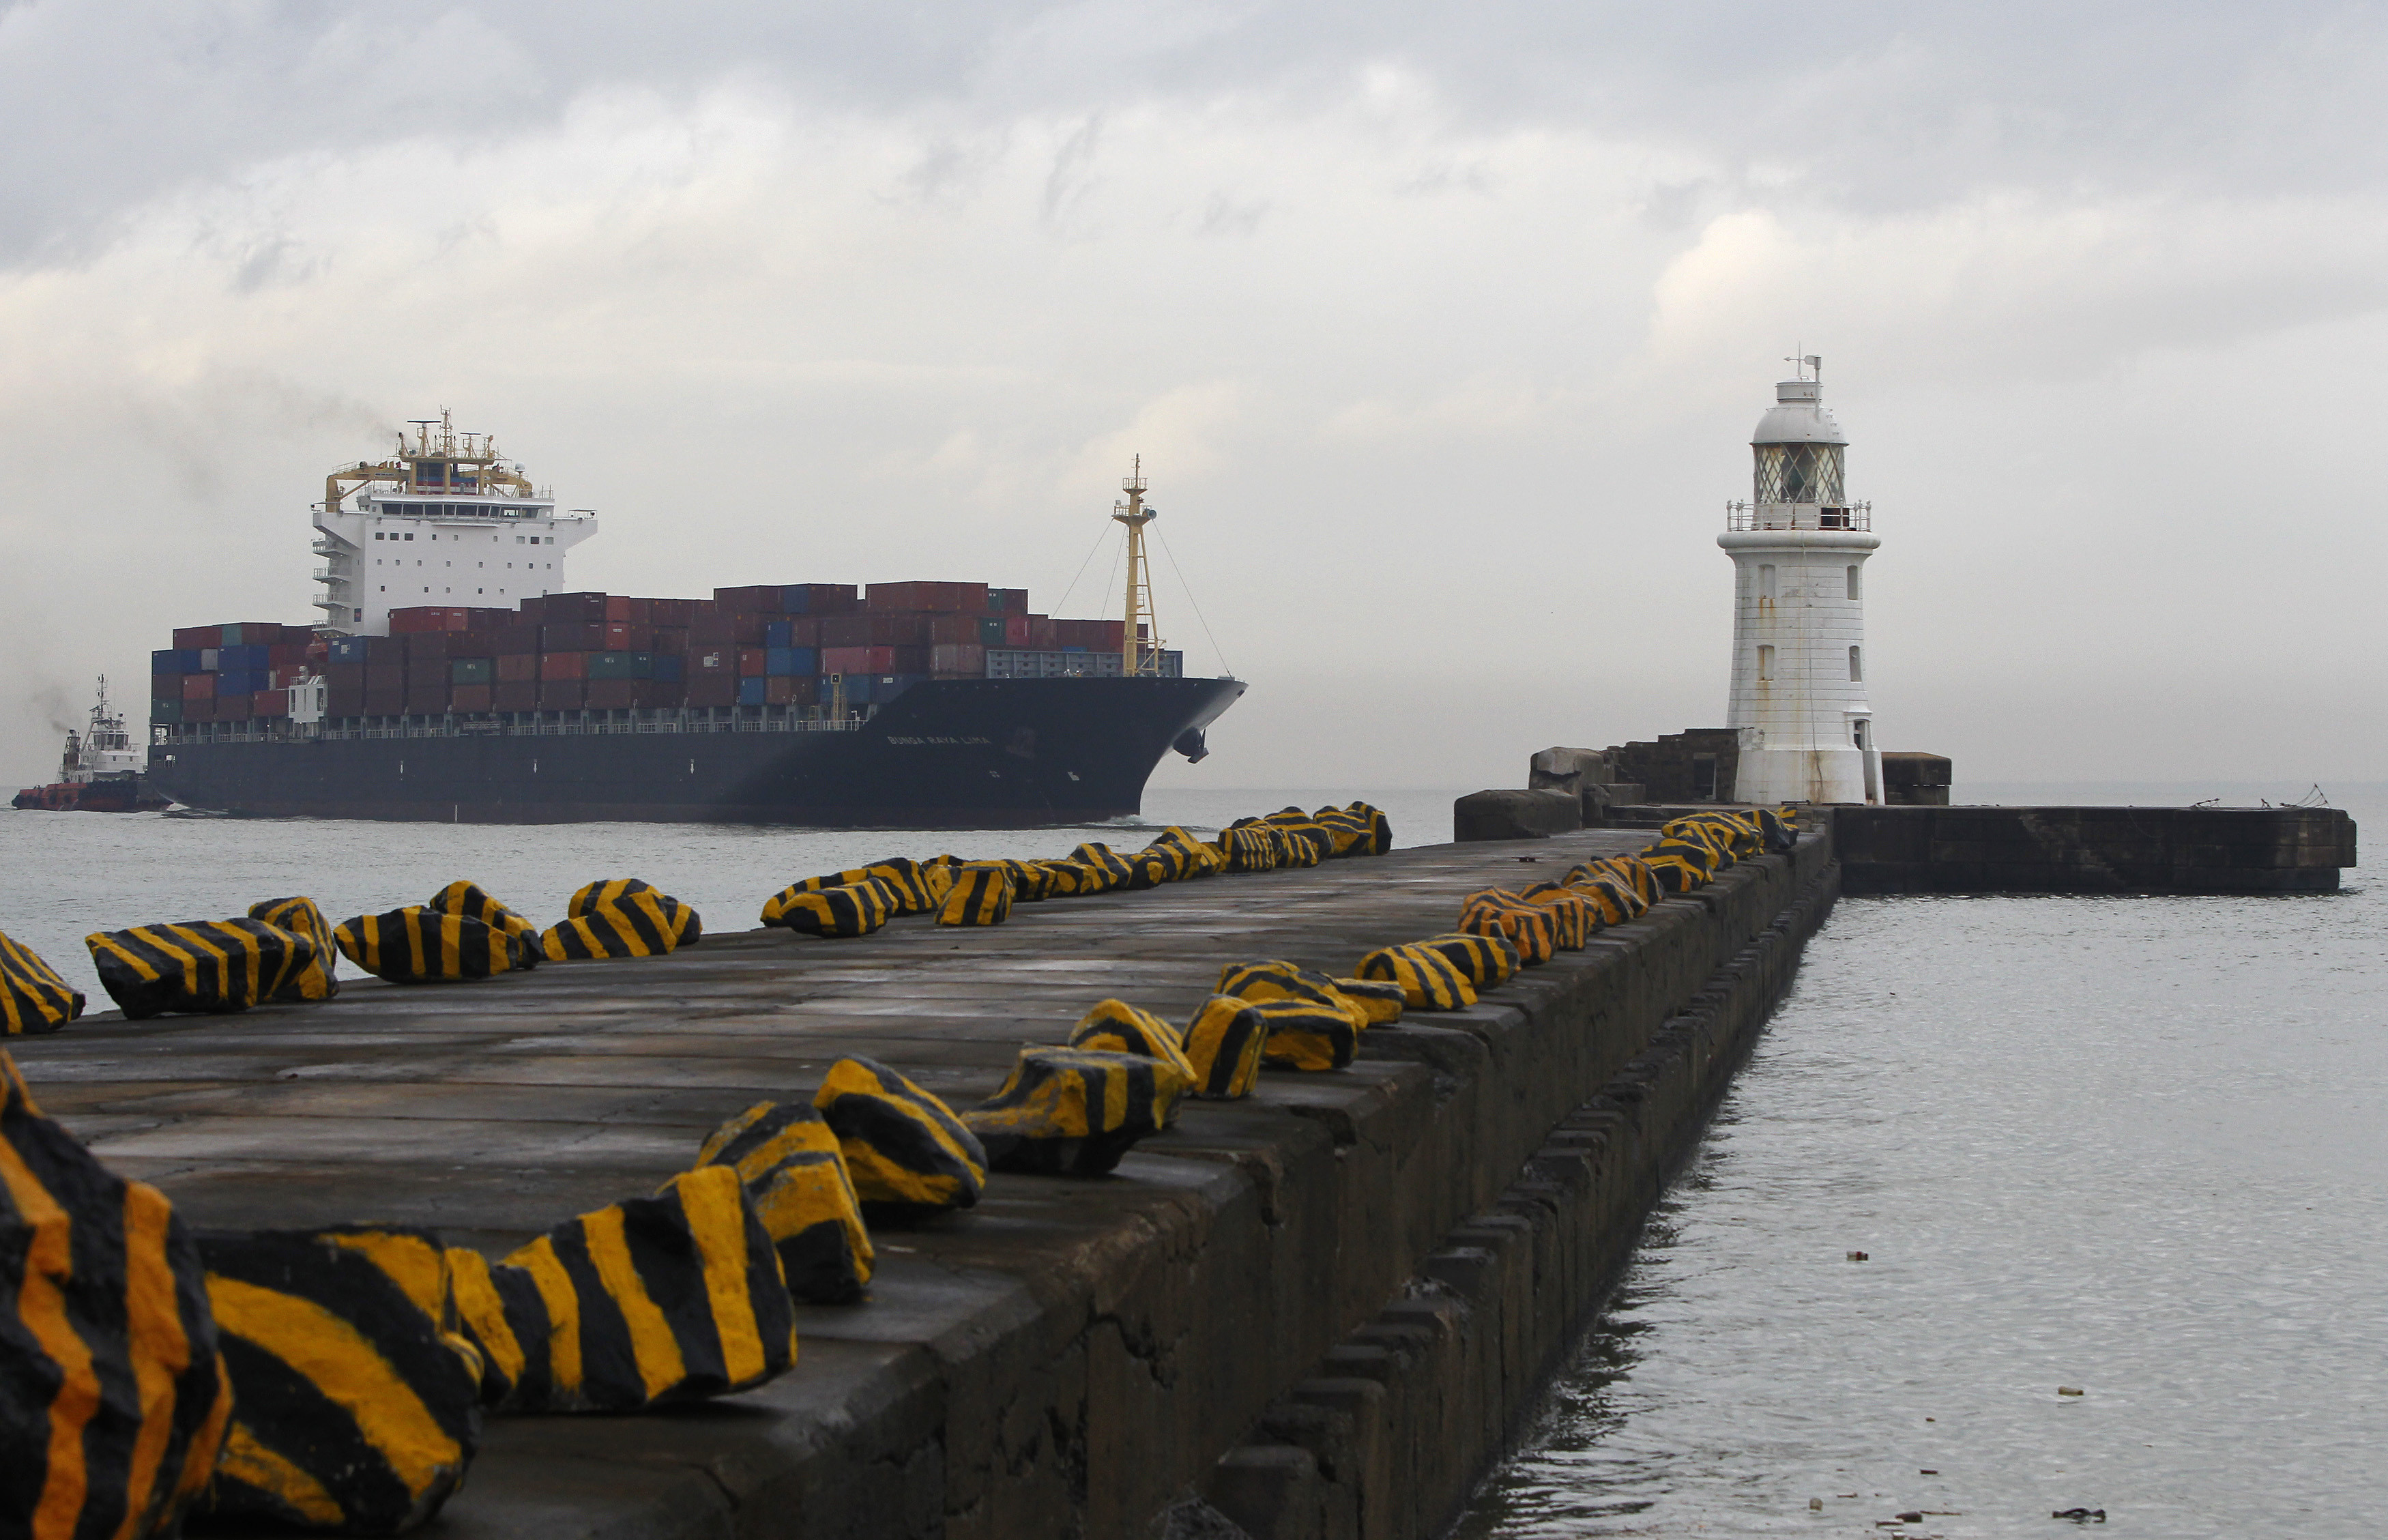 A container ship passes a lighthouse as it enters the main Sri Lankan port in Colombo December 8, 2010.   In the country's 2011 budget over $6 billion in post-war infrastructure projects have  been given priority with public investment of 413.7 billion  rupees ($3.7 billion) budgeted in 2011. Offshore investors  have long complained about Sri Lanka's poor infrastructure, so  the moves to boost ports and build roads have been welcomed.  REUTERS/Andrew Caballero-Reynolds  (SRI LANKA - Tags: BUSINESS) - GM1E6C81ORI01